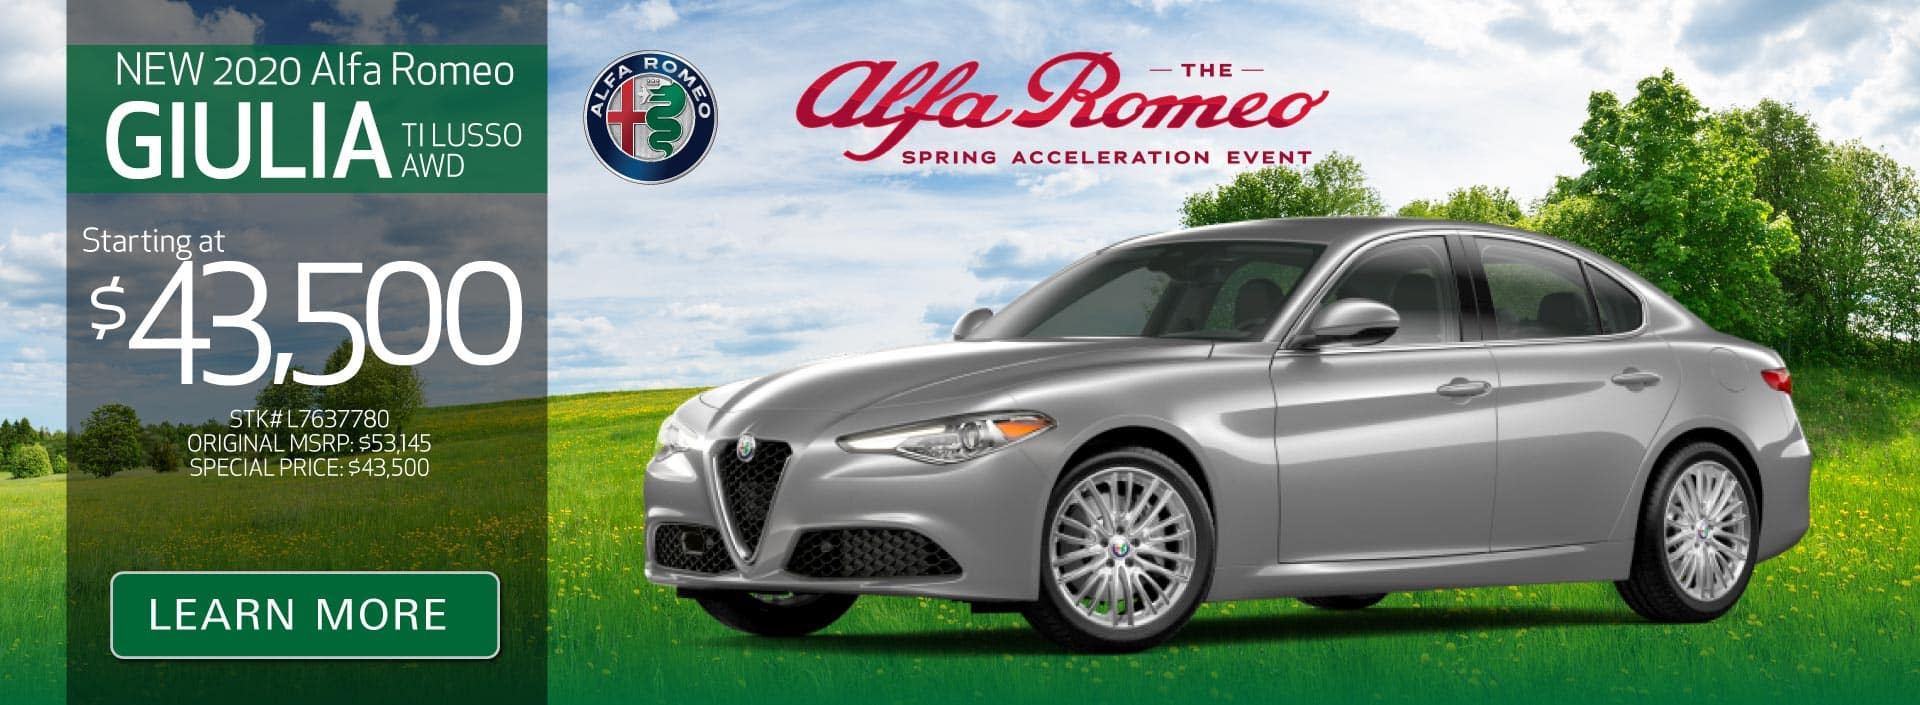 New 2020 Giulia TI Lusso AWD starting at $43,500 | Learn More